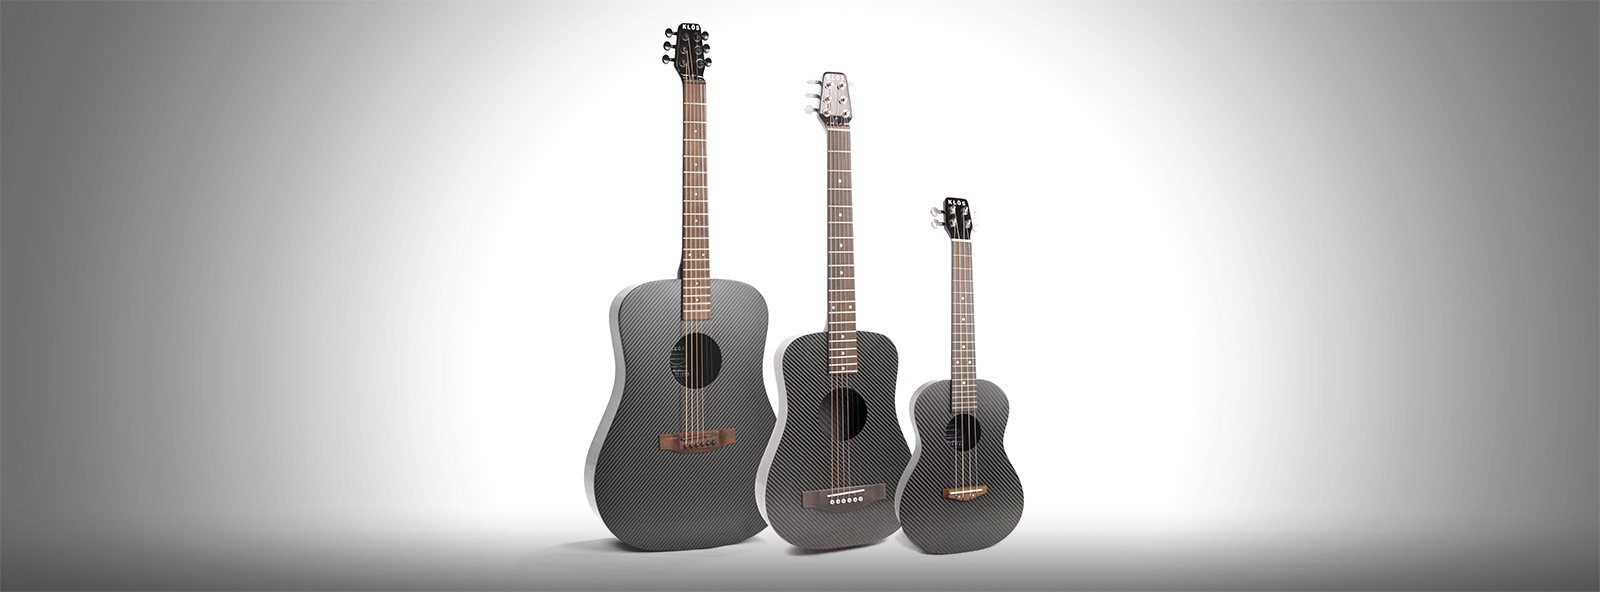 how-we-invented-a-carbon-fiber-guitar-and-grew-to-1m-year